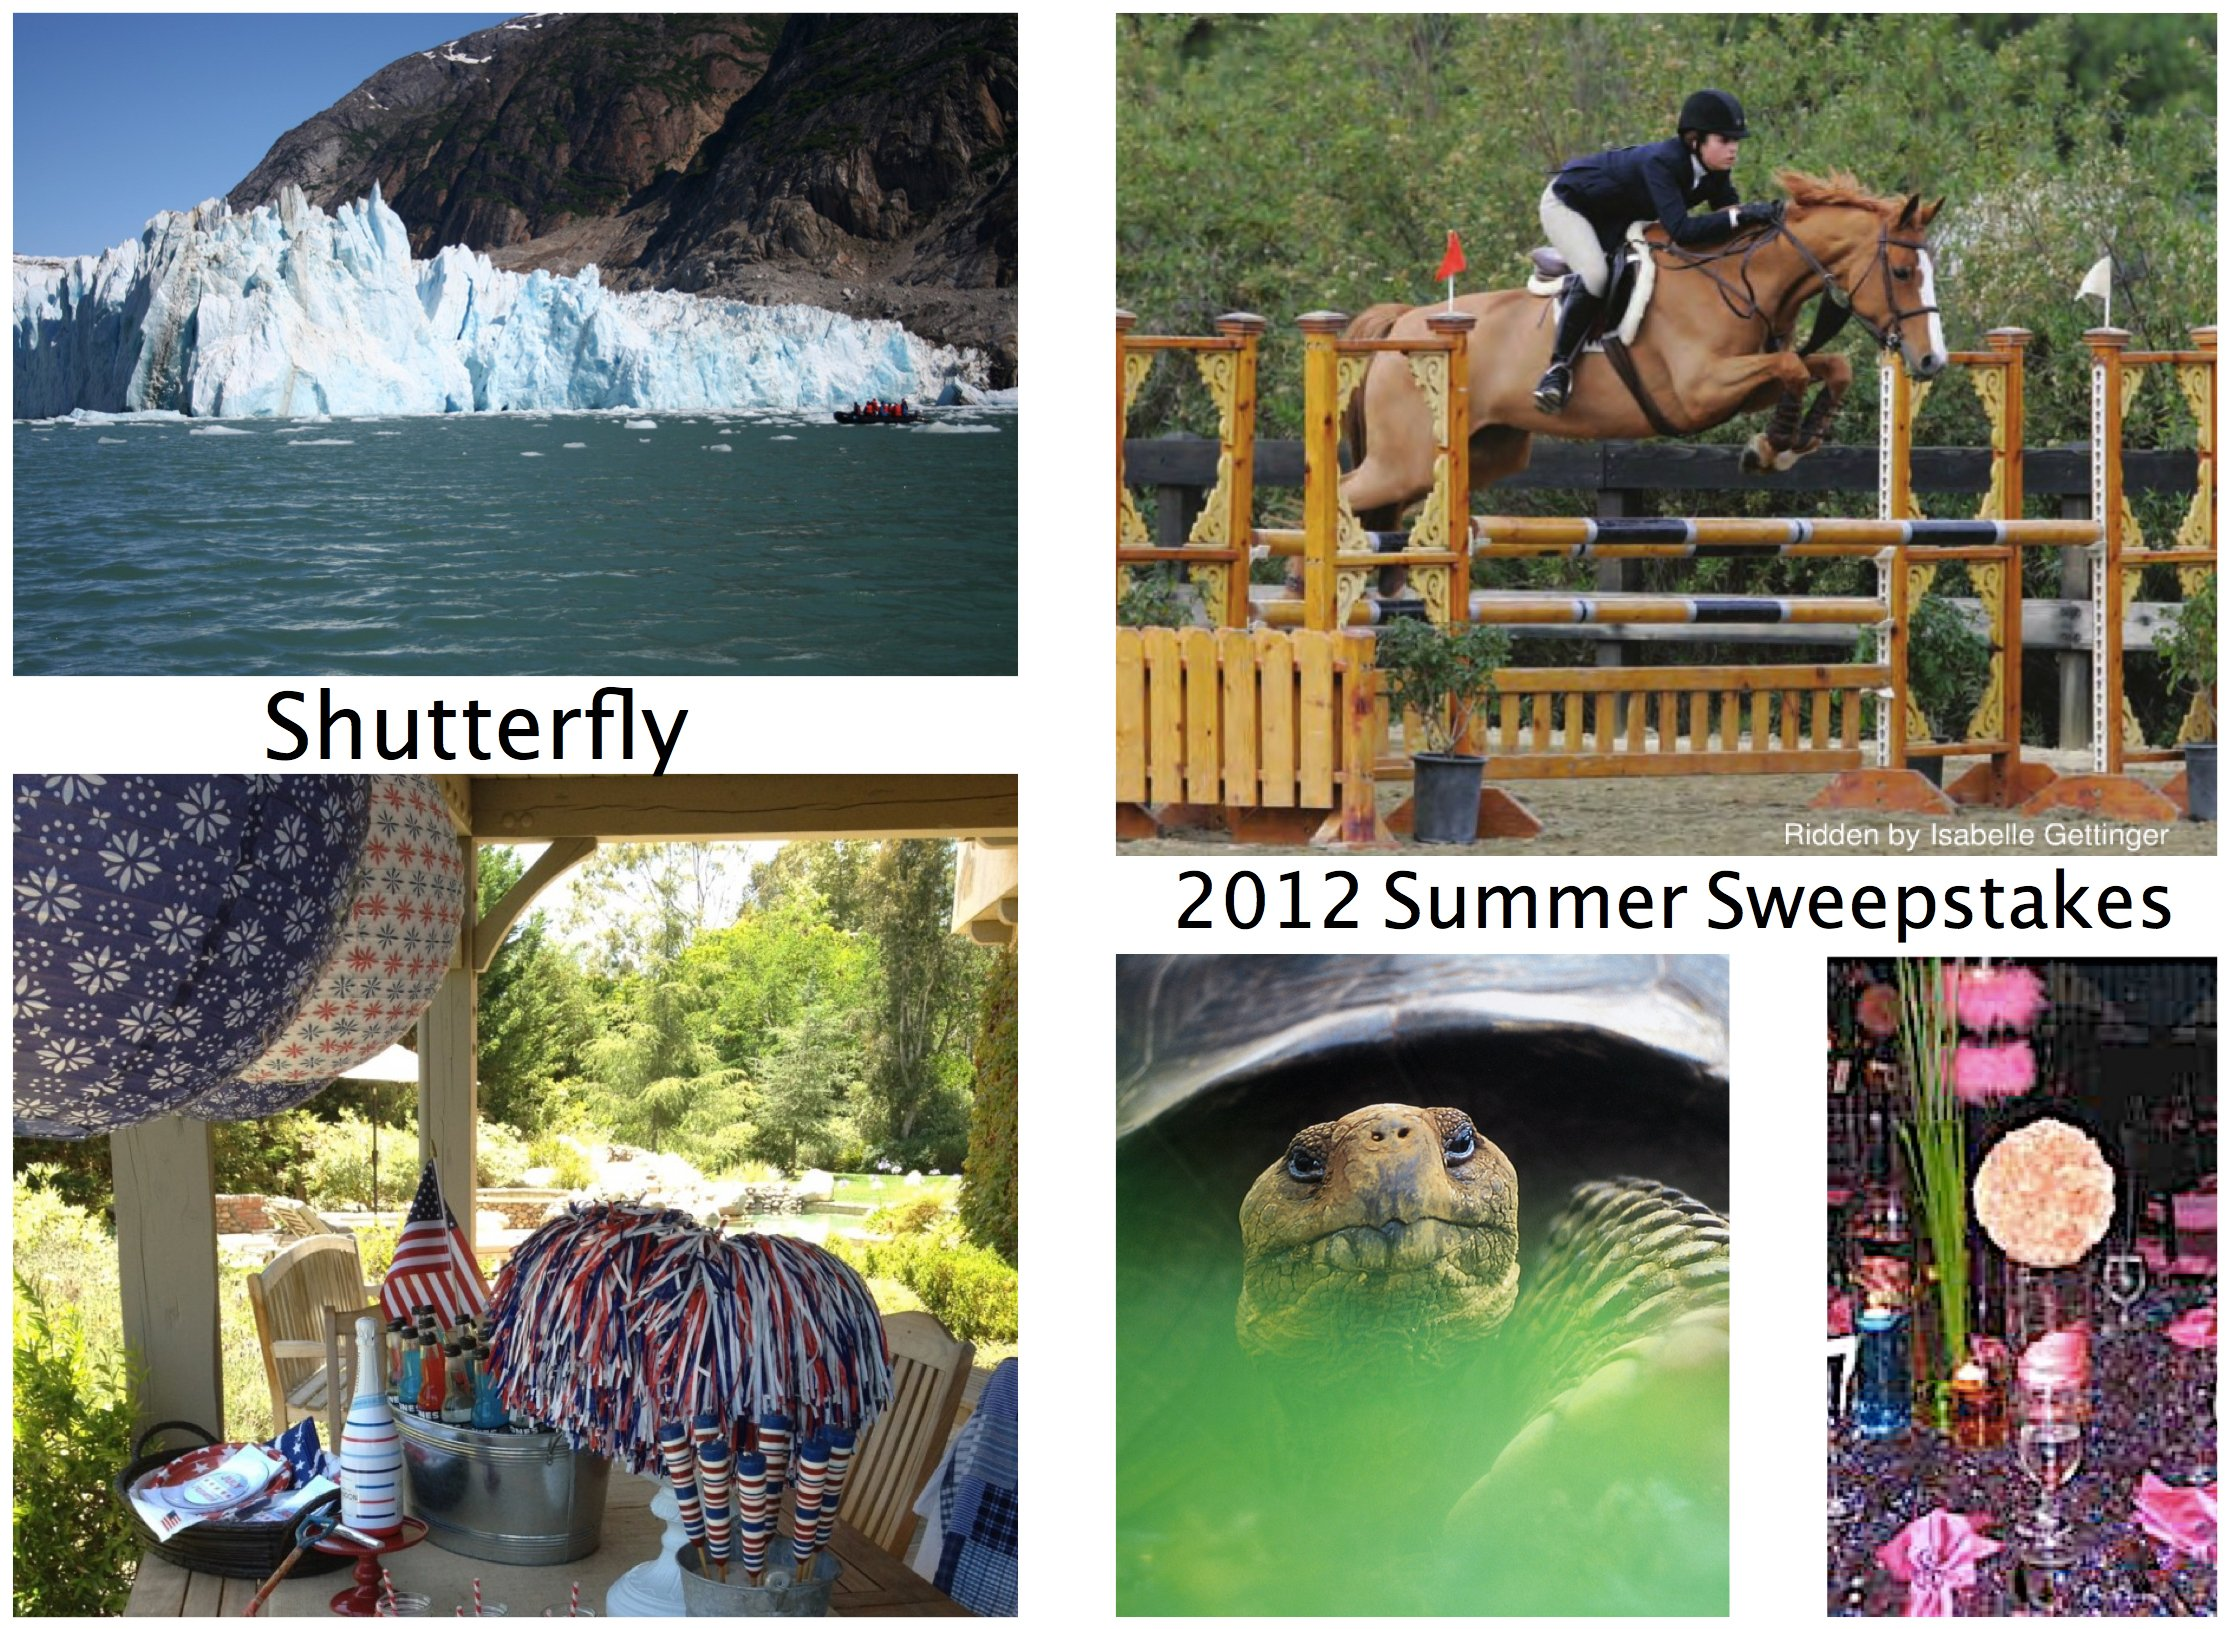 Shutterfly 2012 Summer Sweepstakes